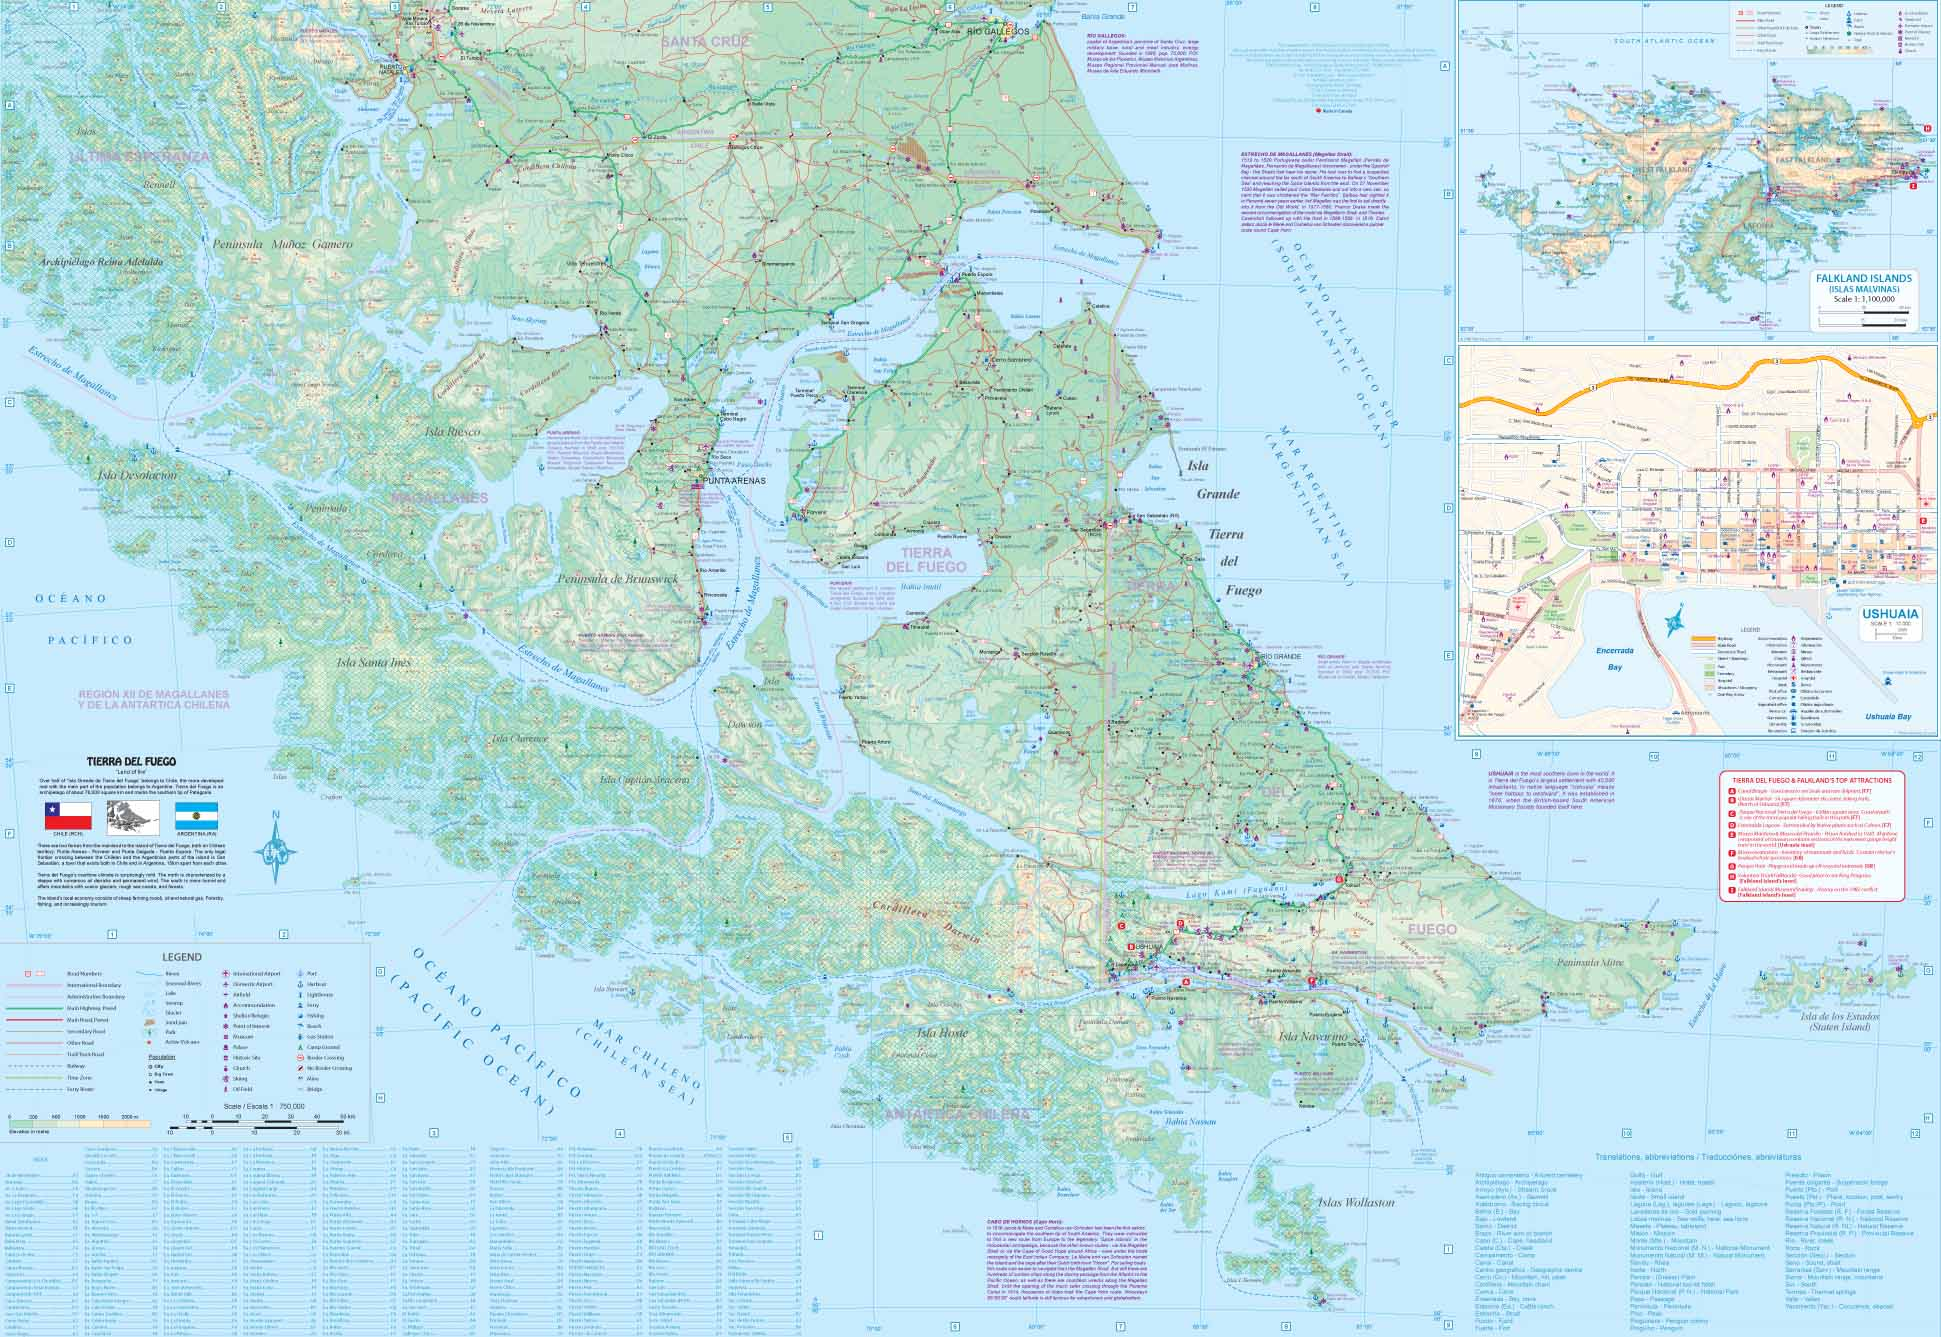 Maps For Travel City Maps Road Maps Guides Globes Topographic - Argentina map tierra del fuego